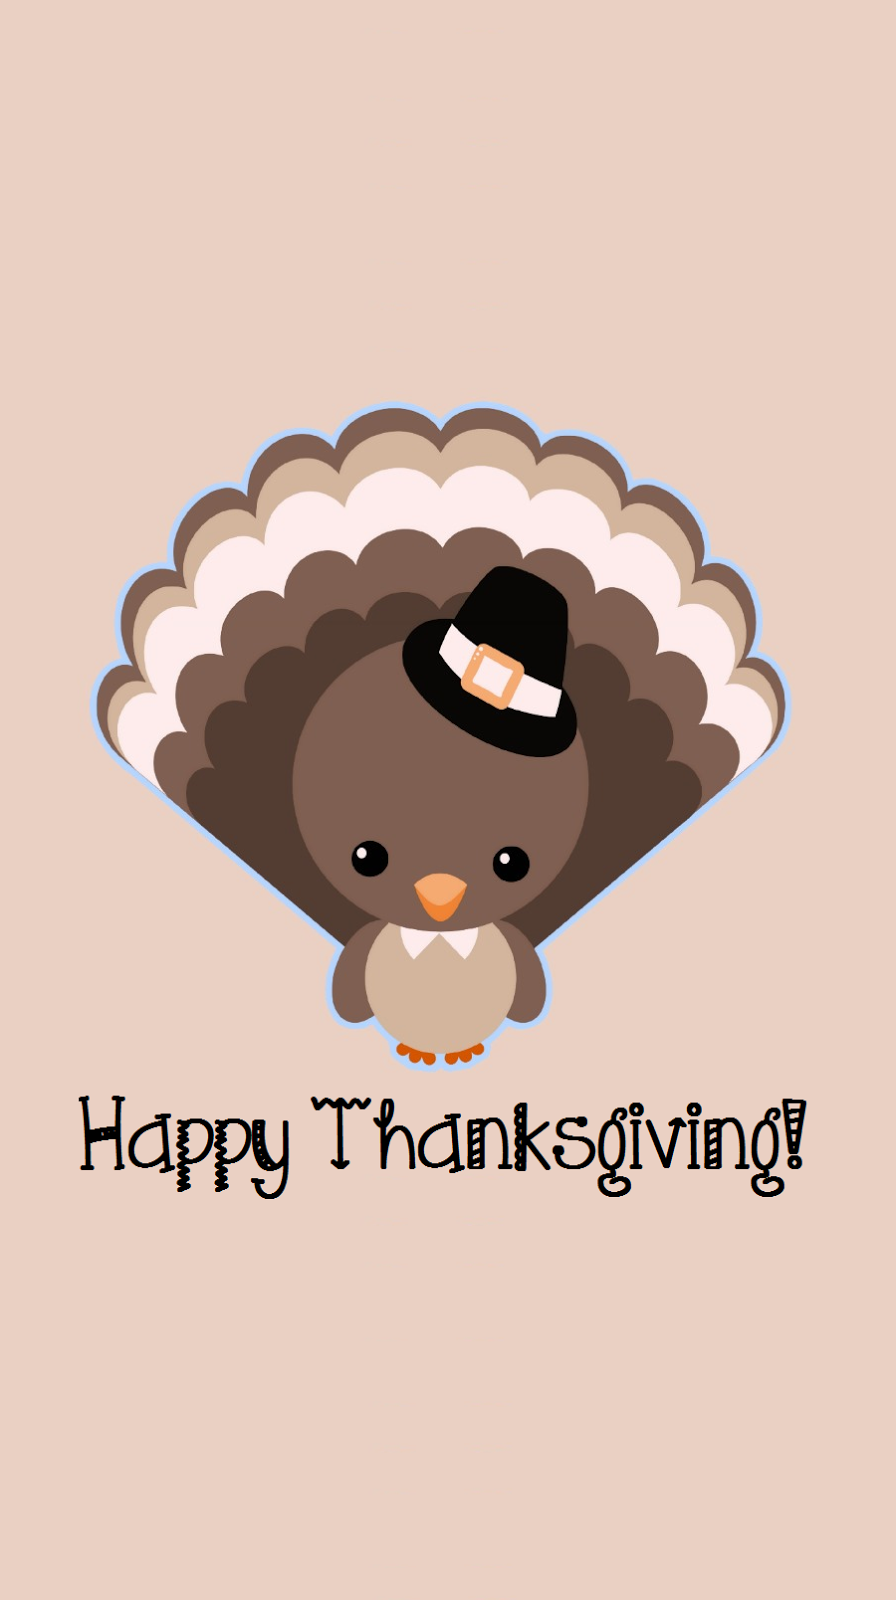 Cute Thanksgiving Picture designs – Finds the Cute Thanksgiving Graphics You Will Love to Embellish Your PC